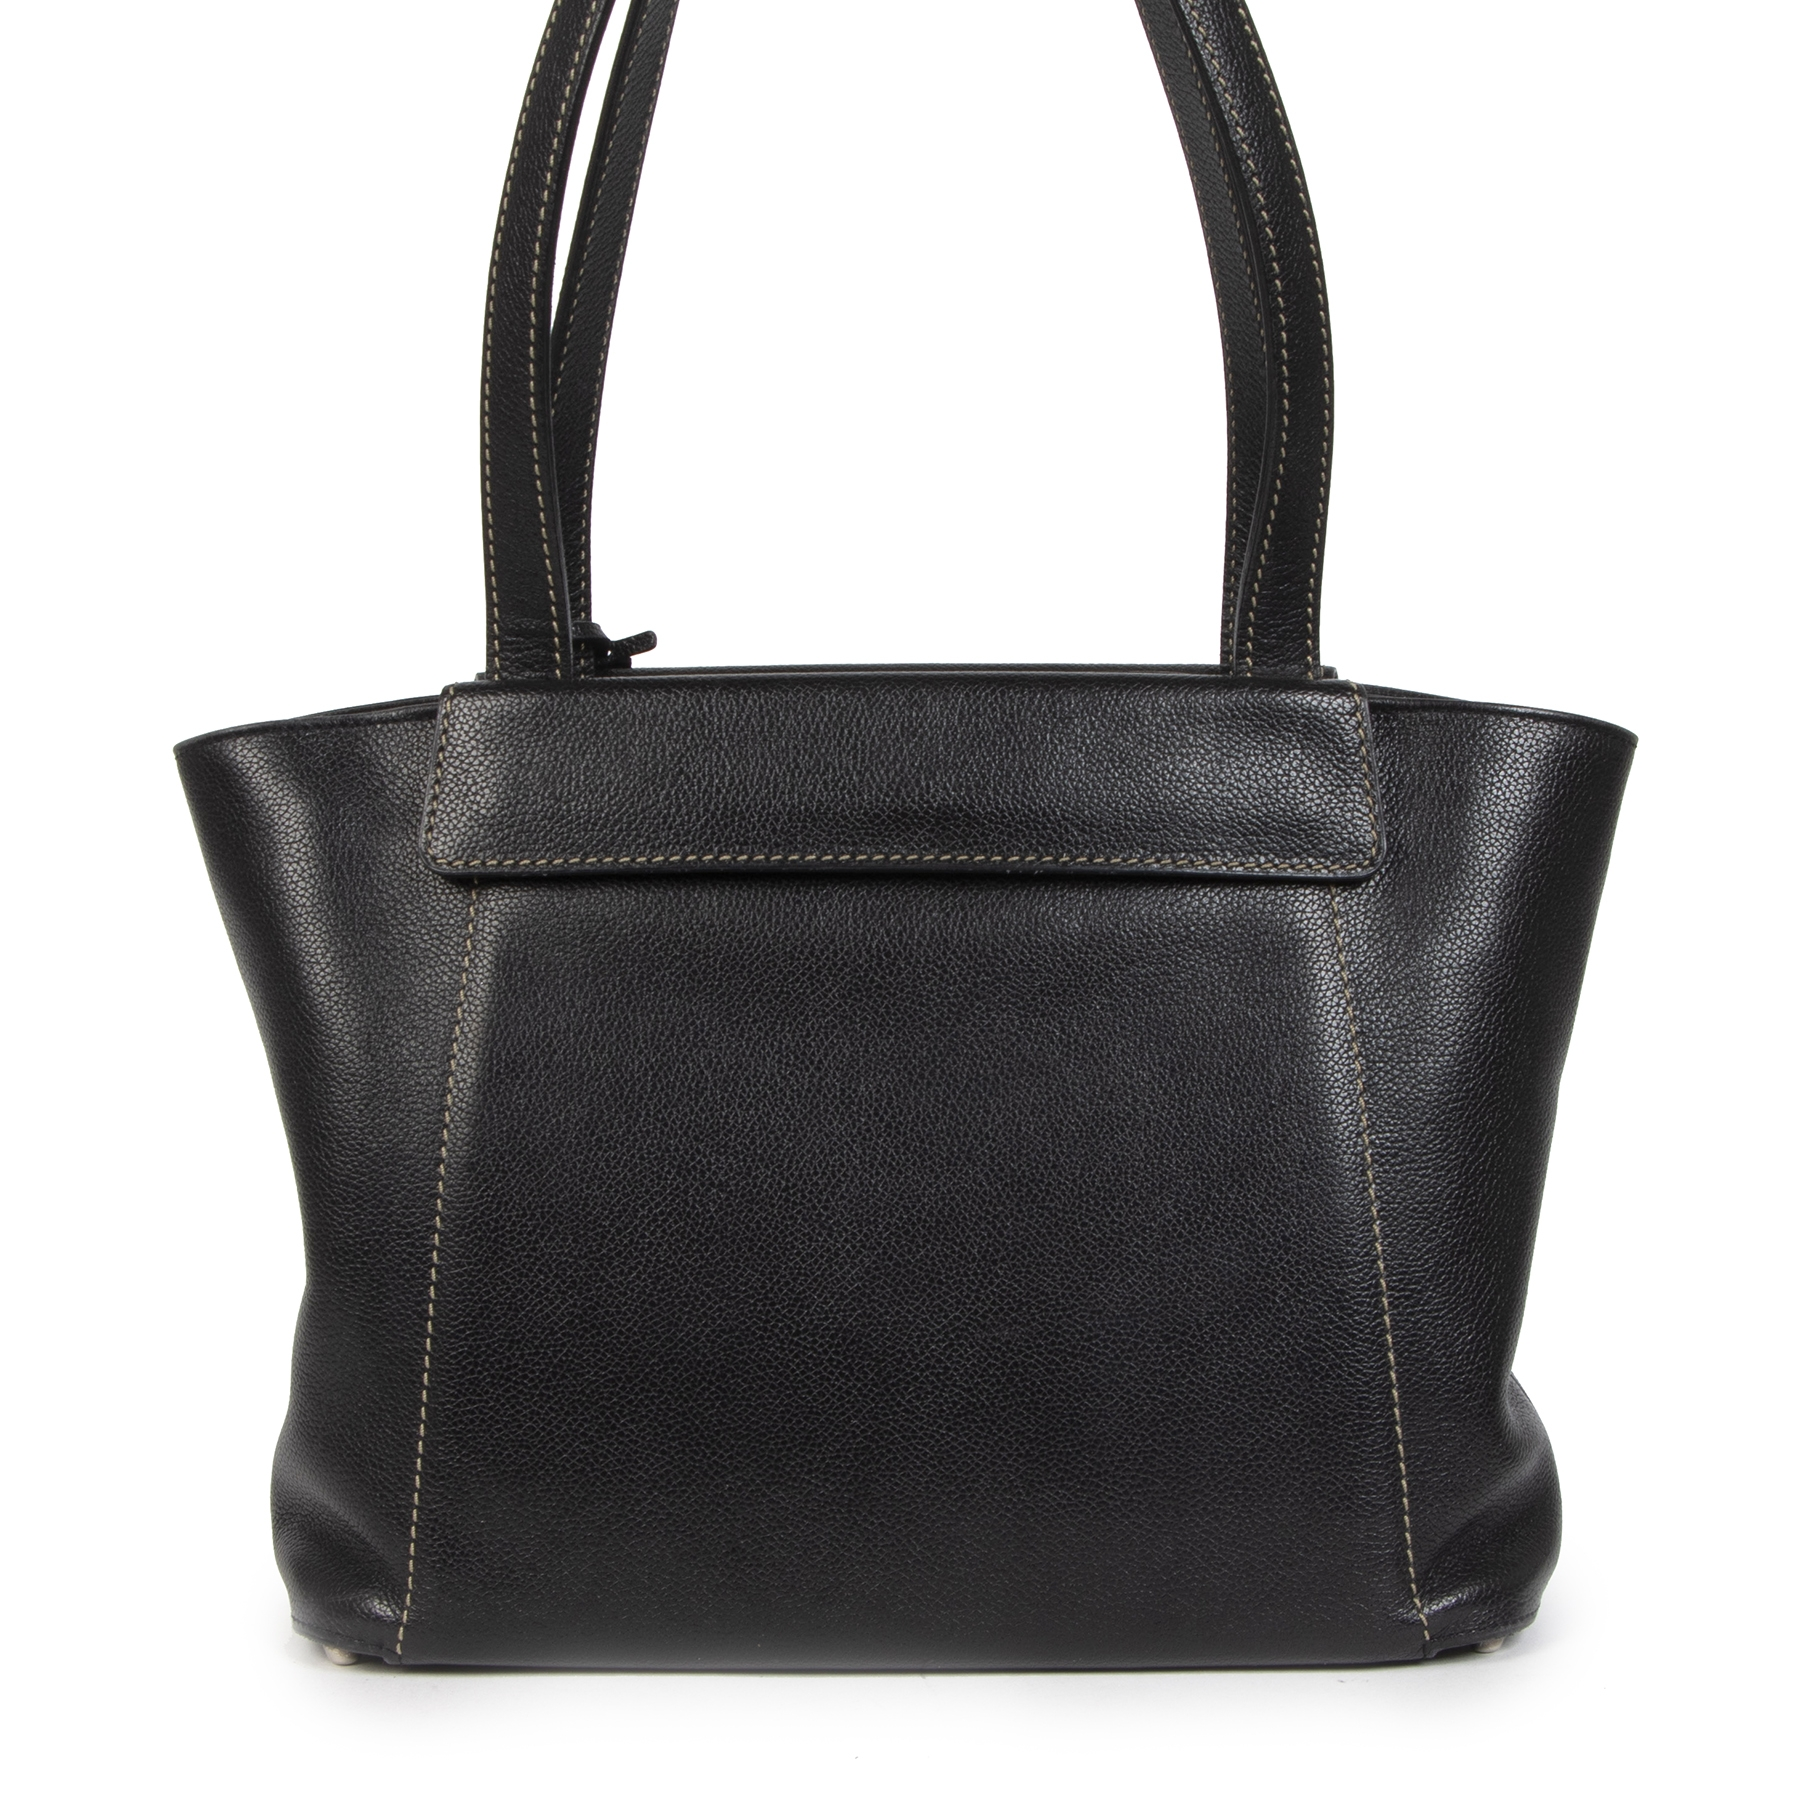 Authentieke tweedehands vintage Delvaux Black Grey Flap Shoulder Bag koop online webshop LabelLOV